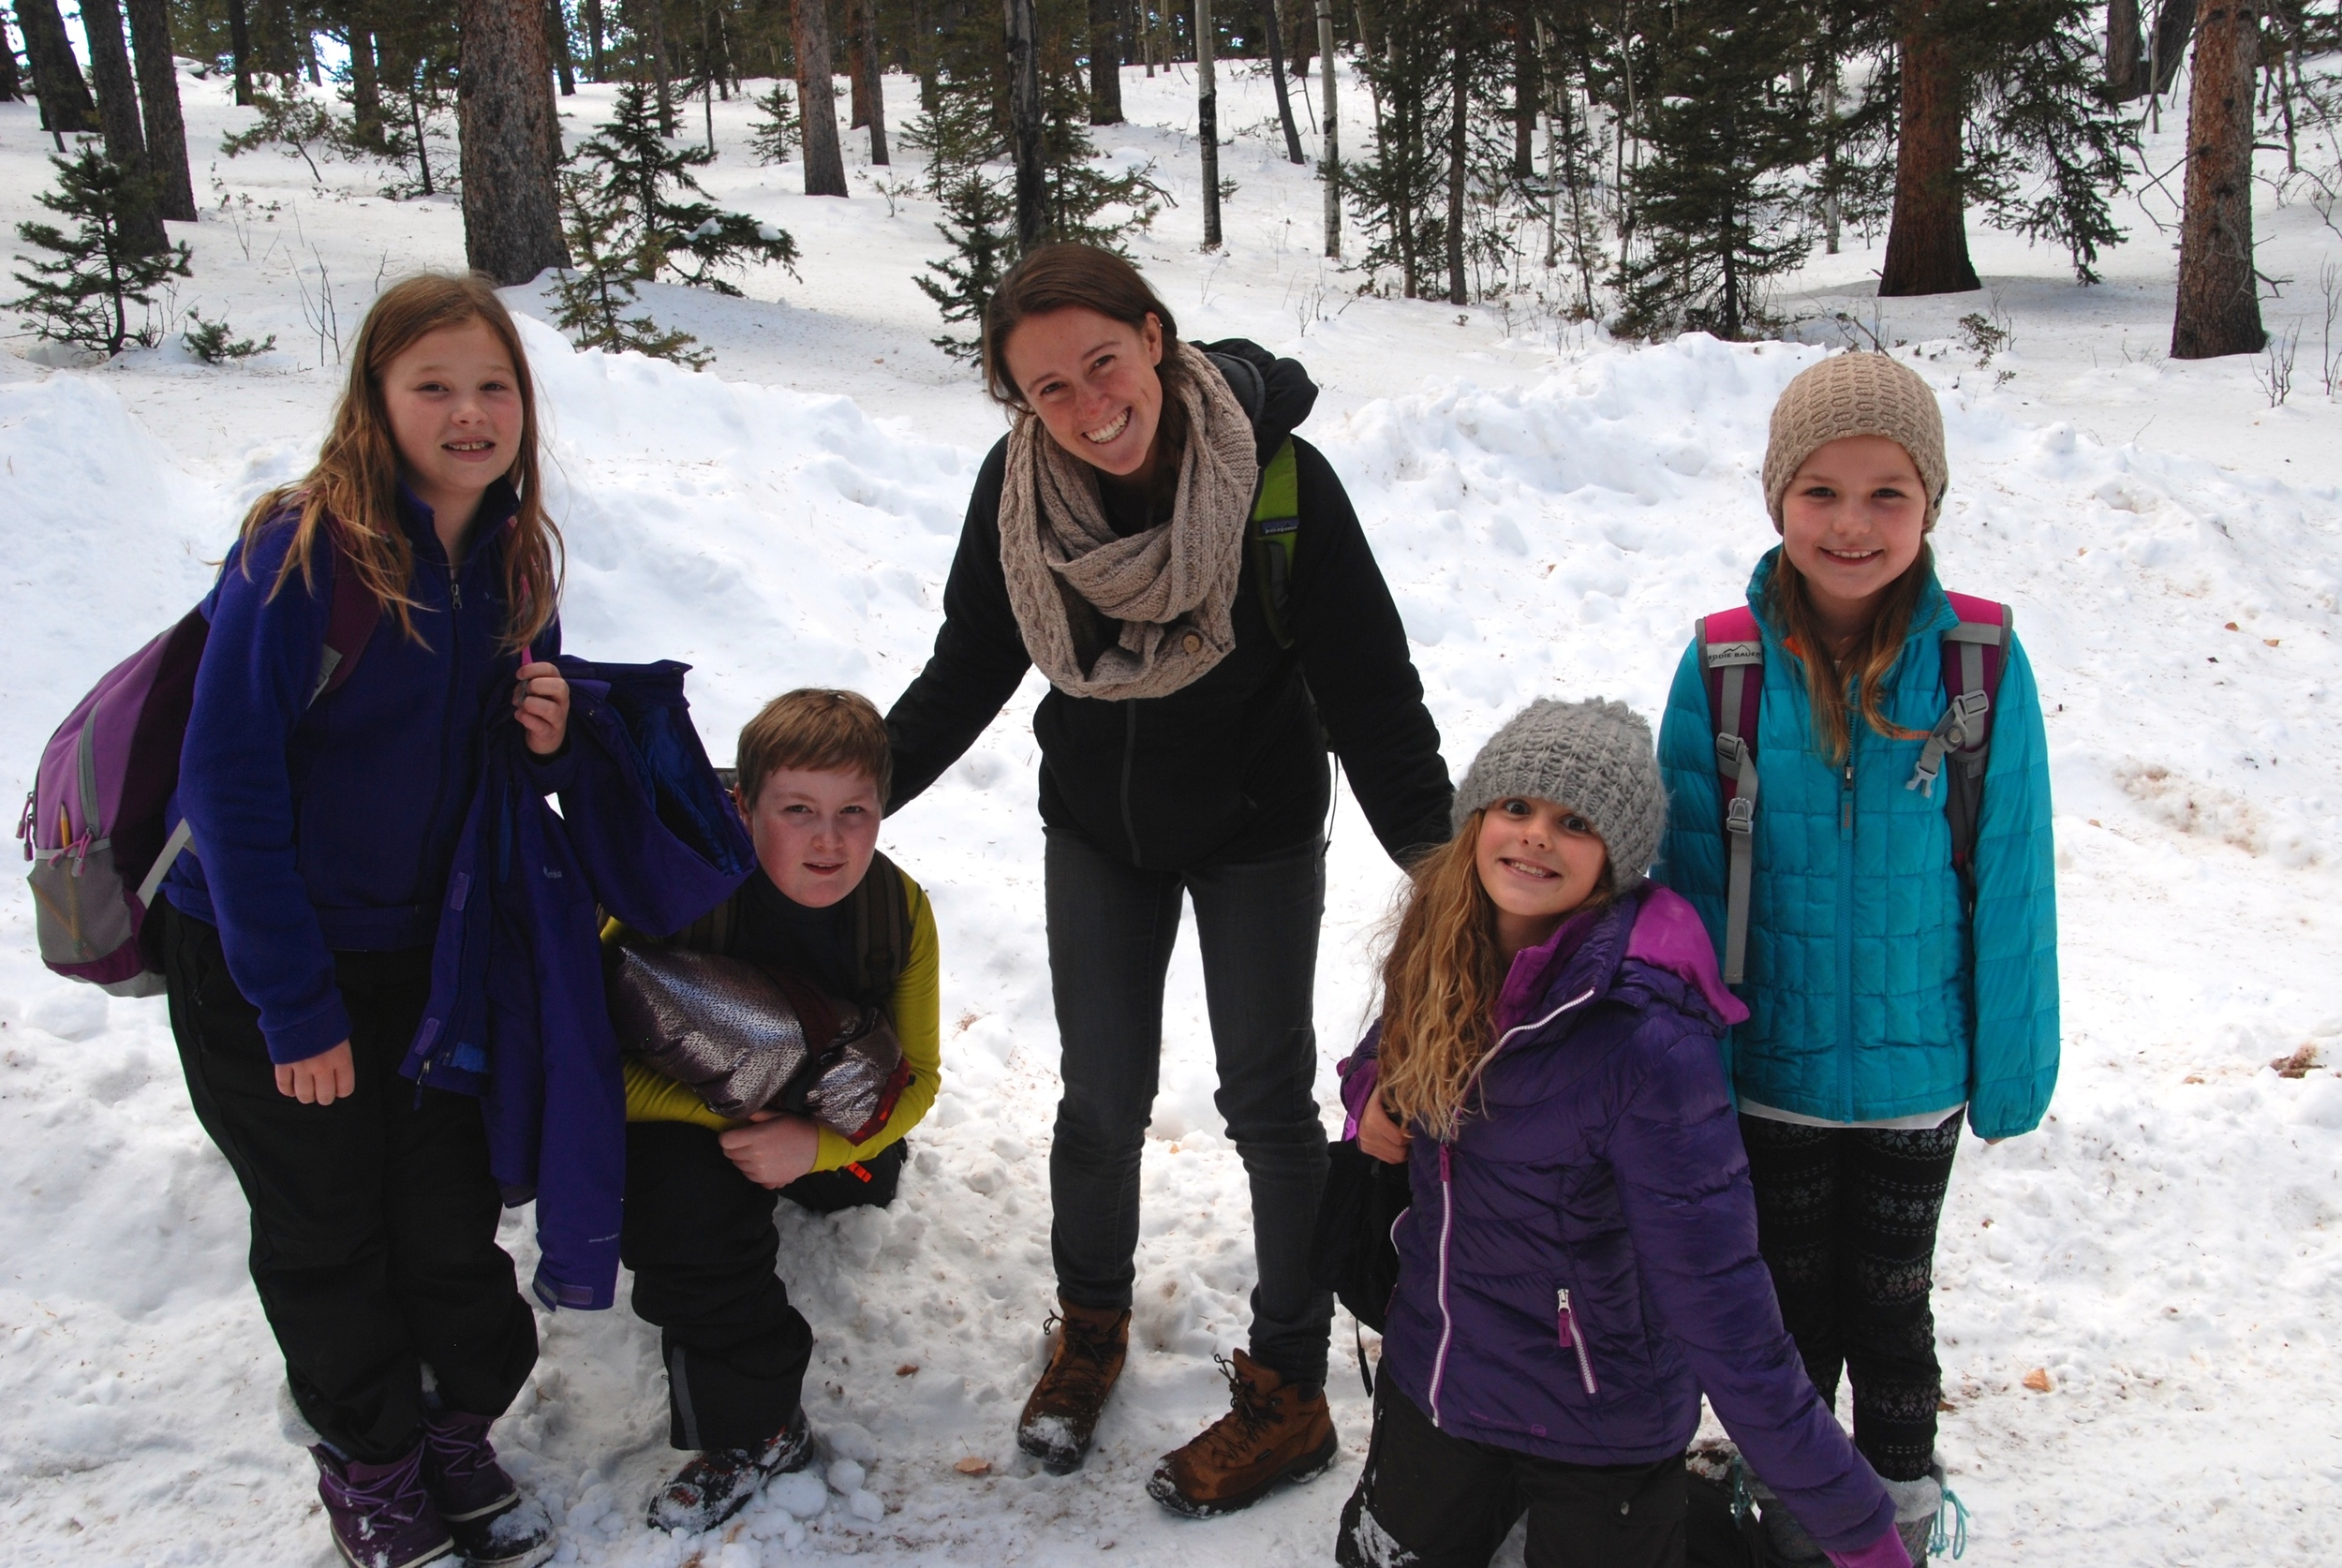 My team of four fifth-grade students on a hike at the Catamount Center. December 2015.